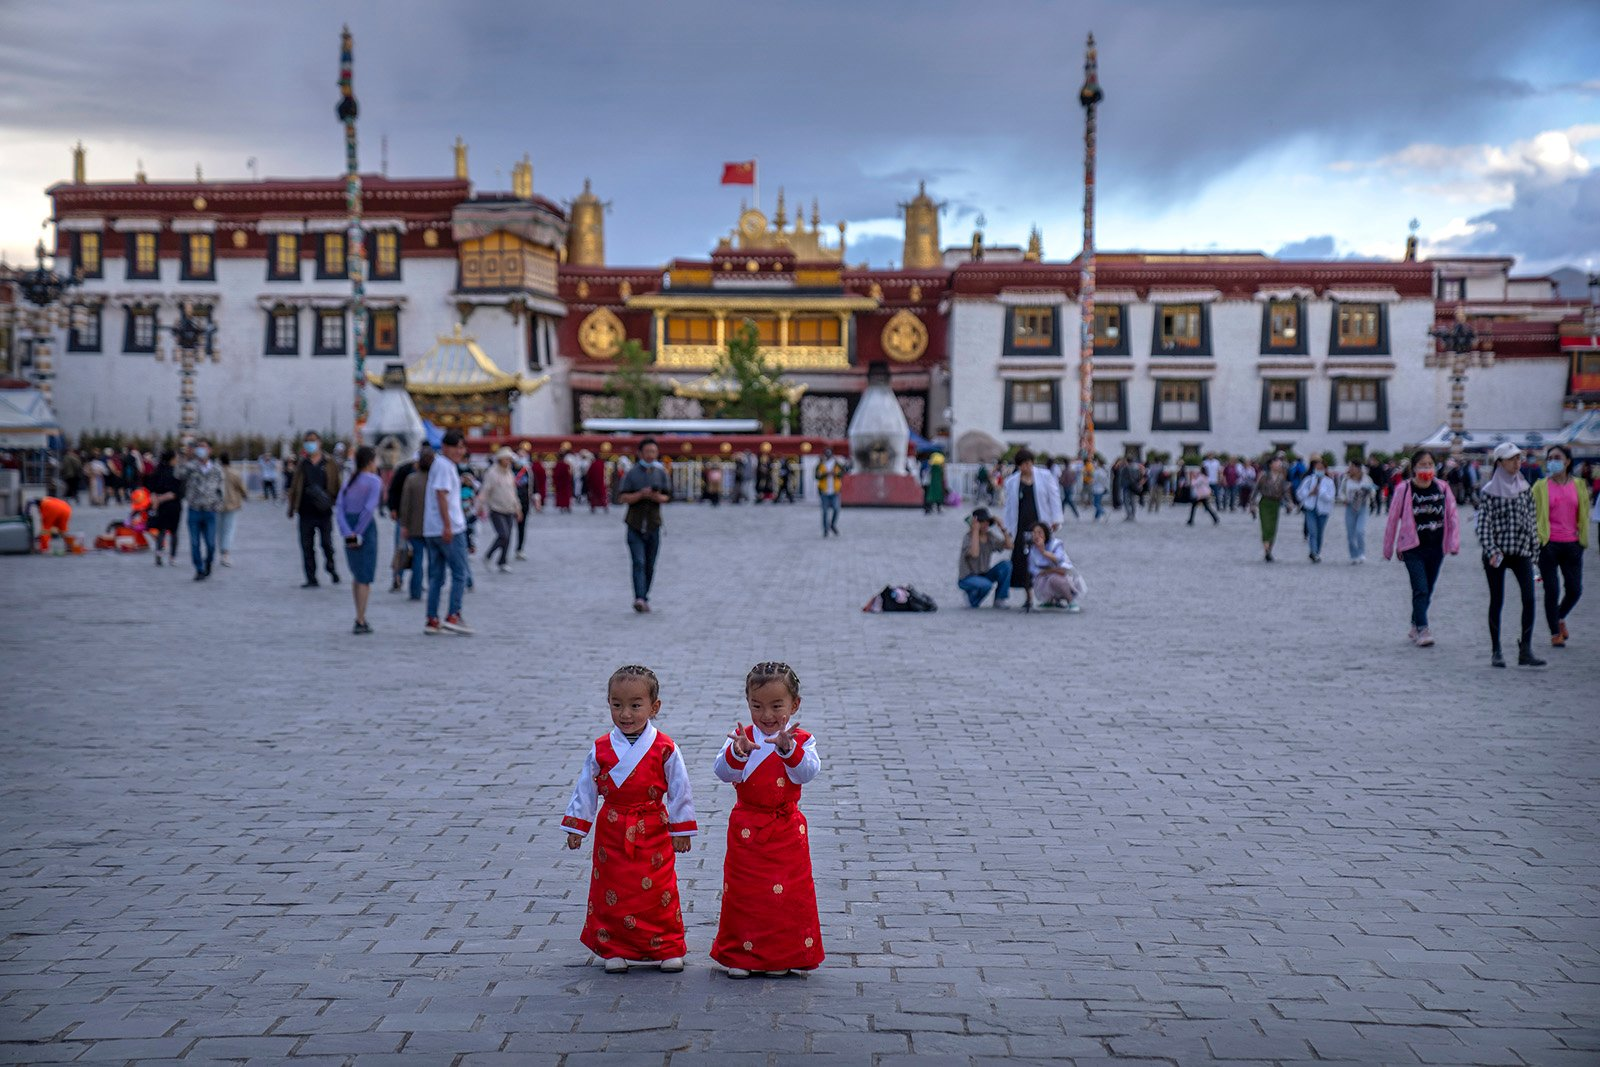 Girls stand on a square in front of the Jokhang Temple in Lhasa in western China's Tibet Autonomous Region, as seen during a government organized visit for foreign journalists, Tuesday, June 1, 2021. (AP Photo/Mark Schiefelbein)